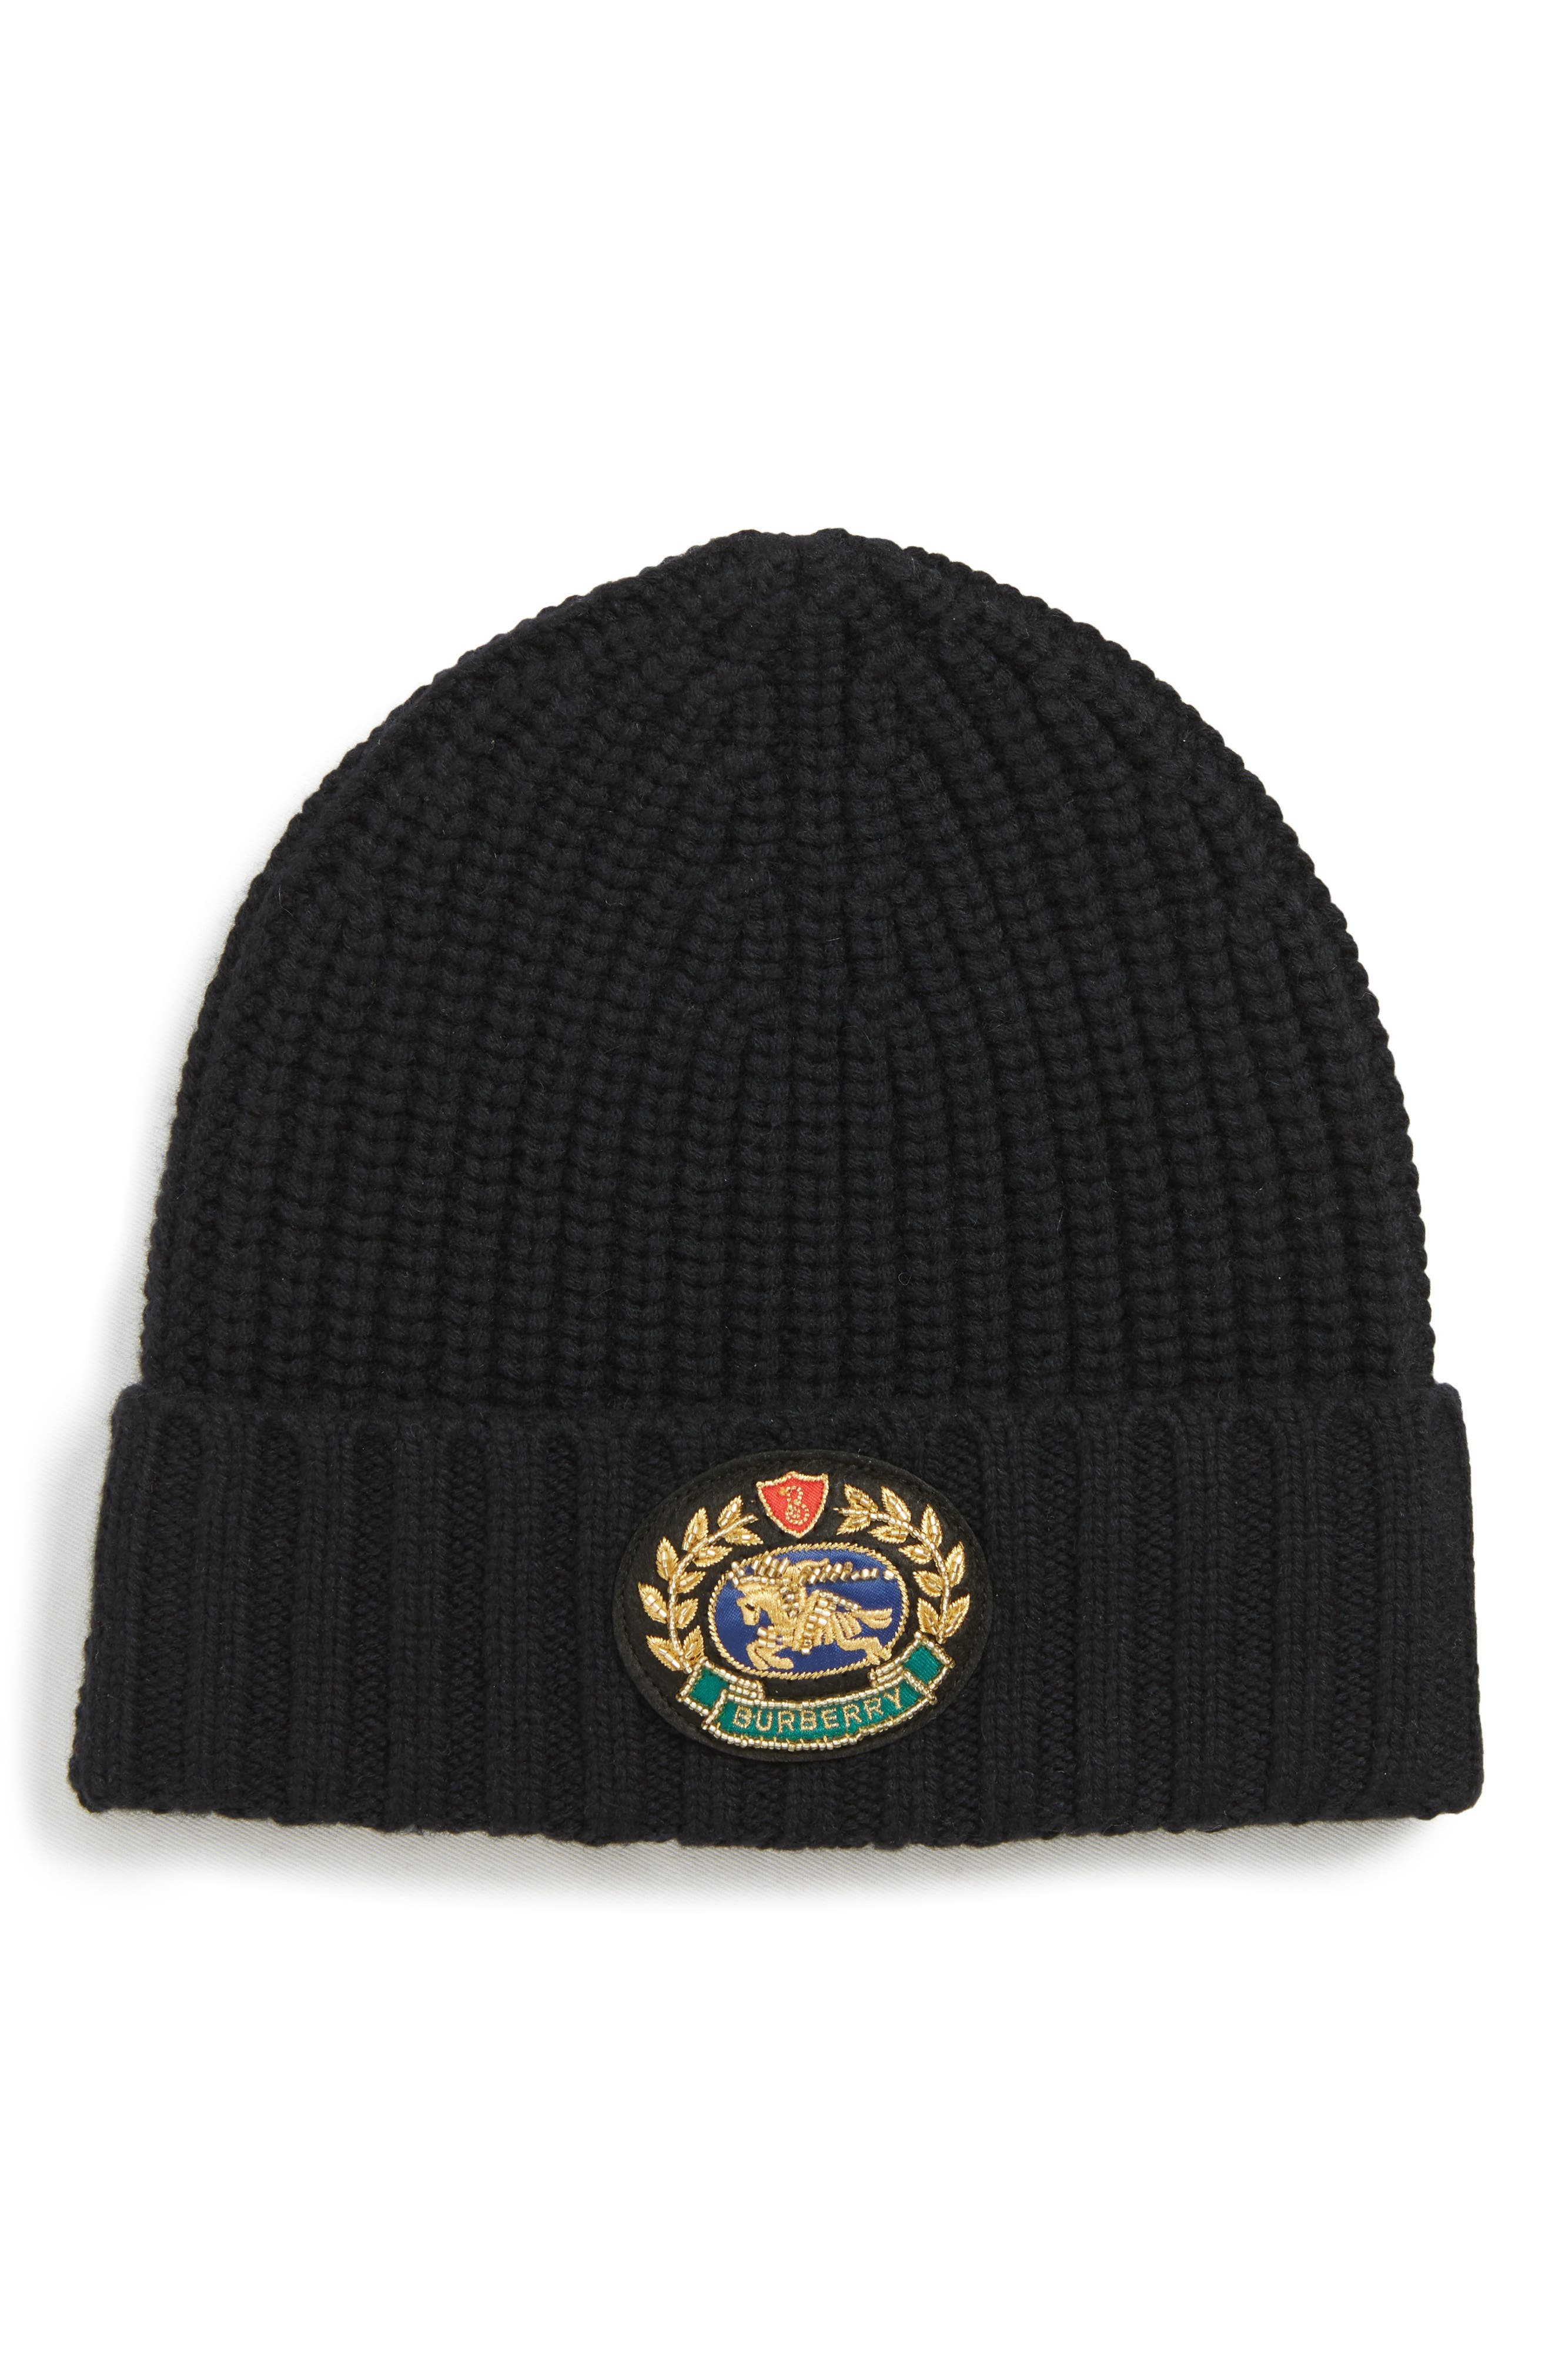 BURBERRY, Embroidered Crest Wool & Cashmere Beanie, Main thumbnail 1, color, BLACK